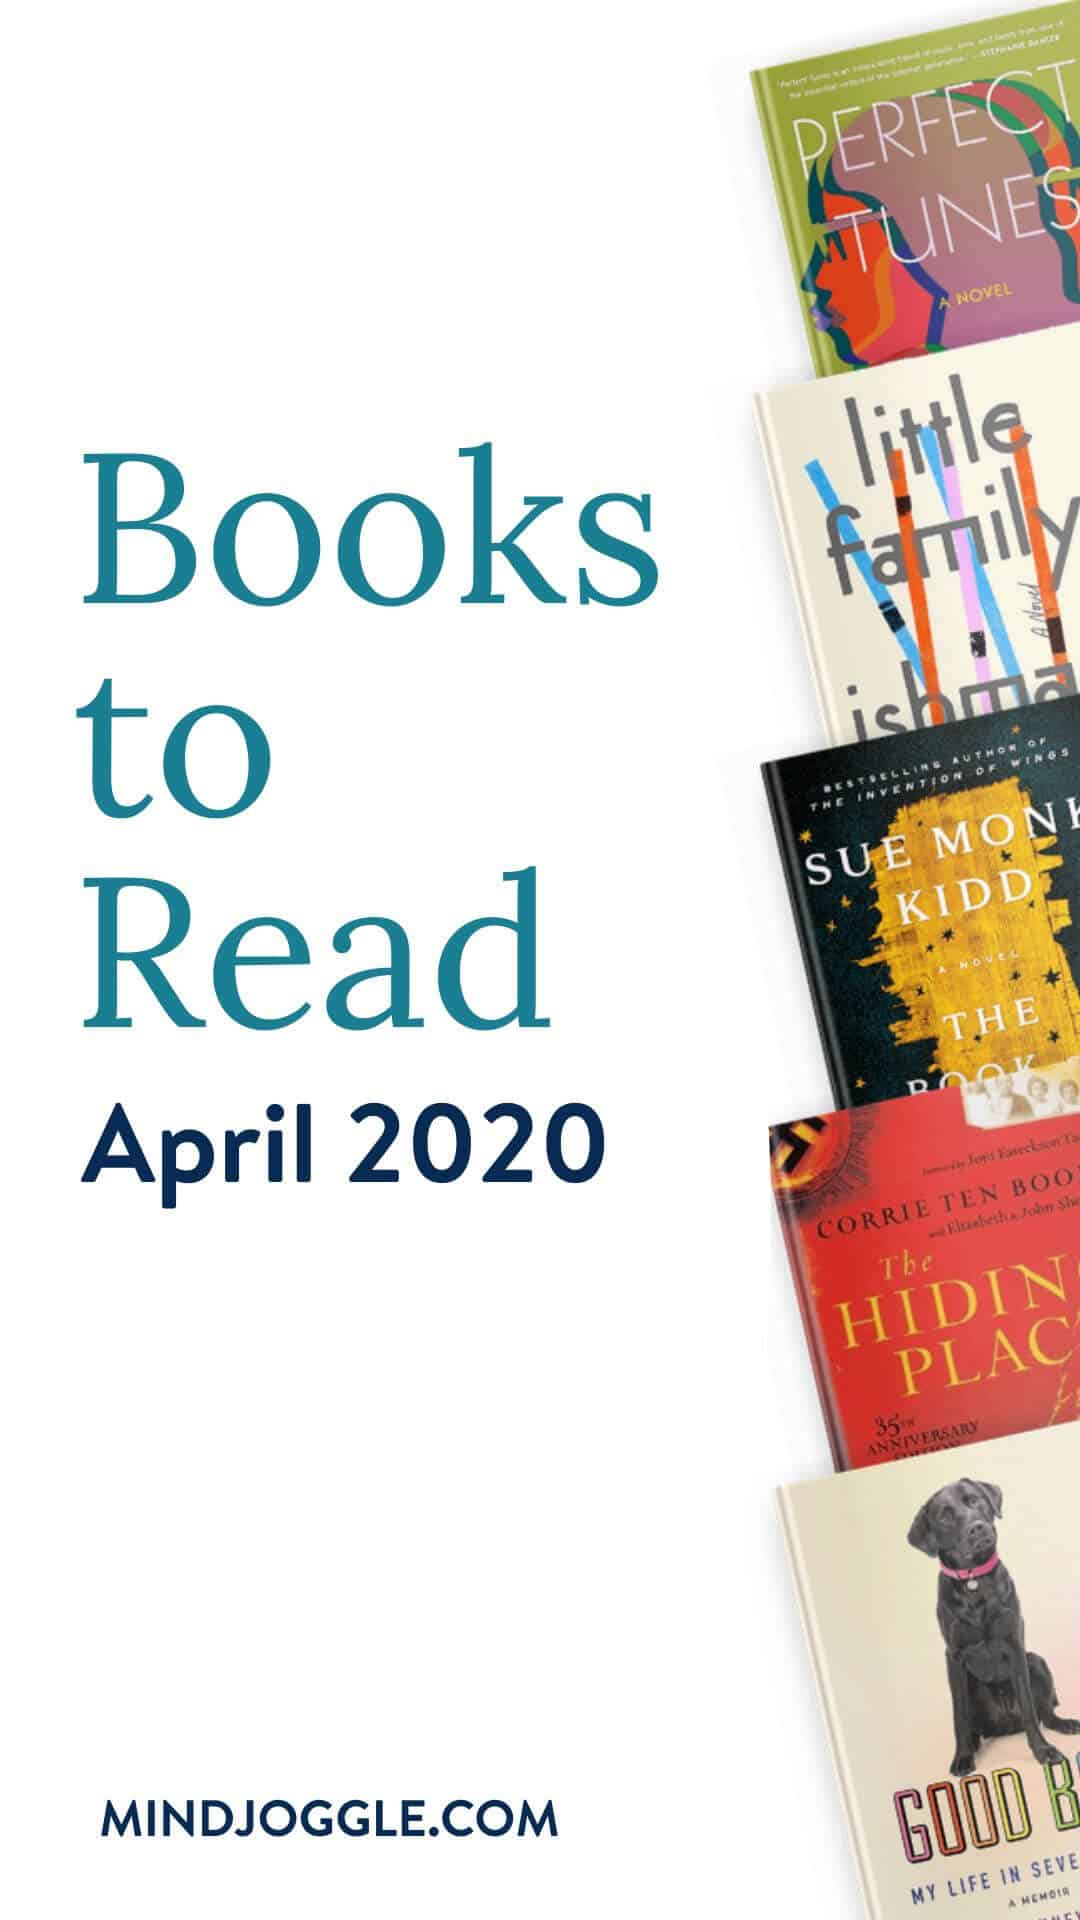 Books to read in April 2020